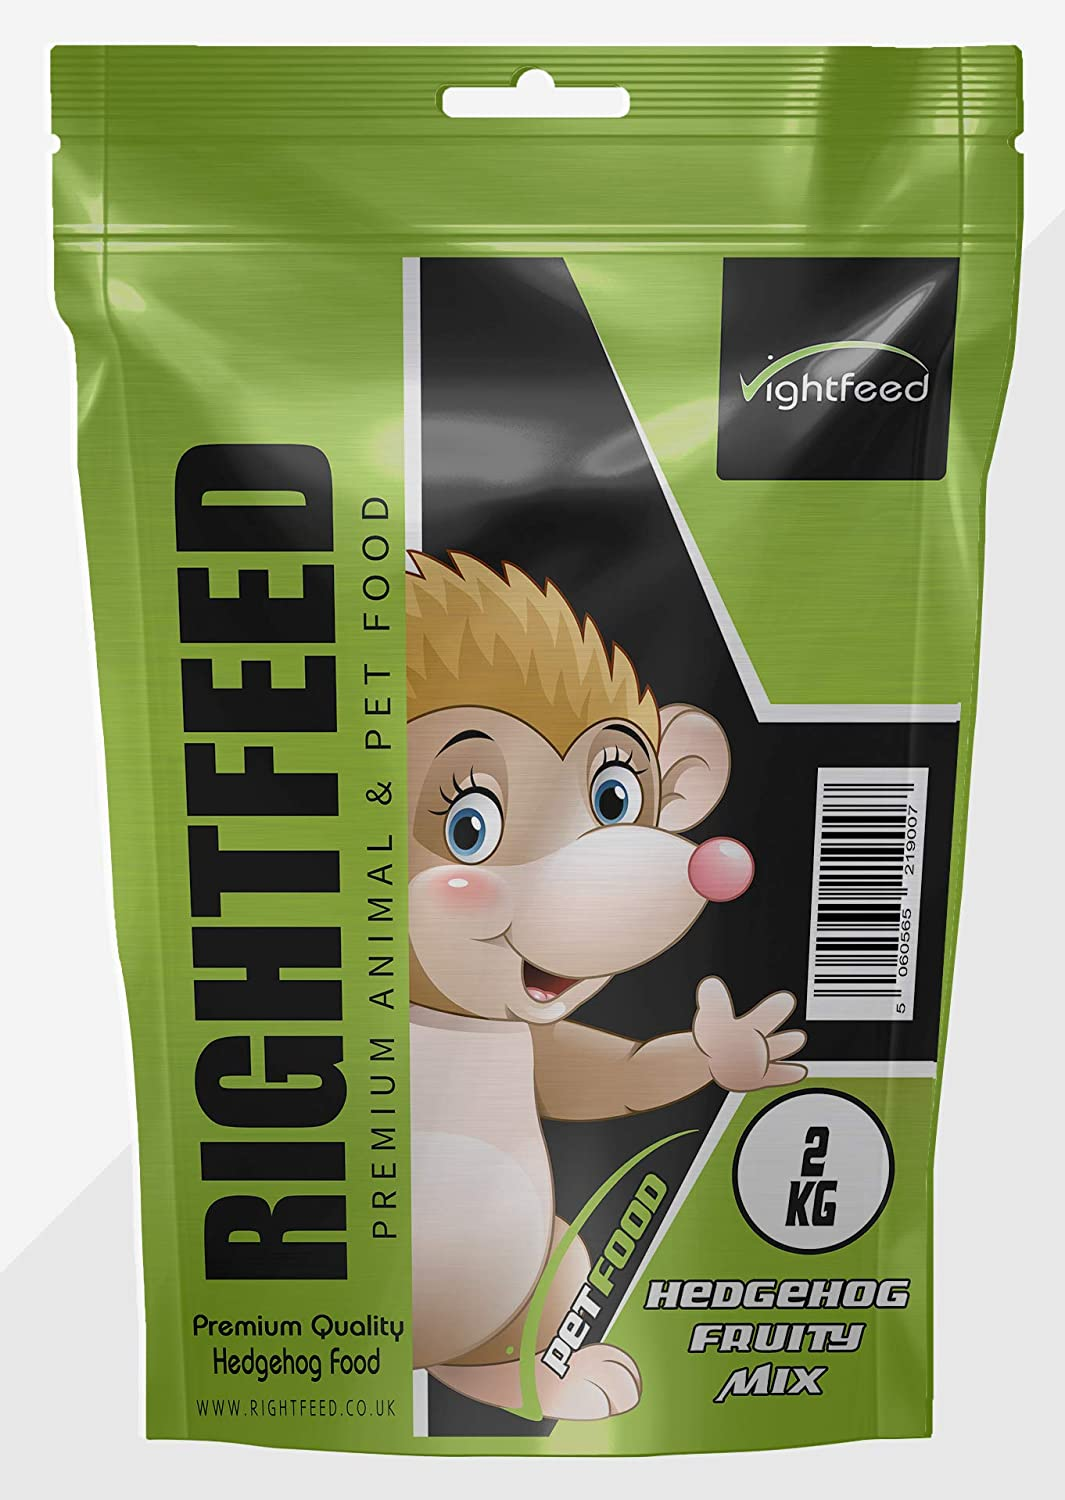 RightFeed Premium Hedgehog Food in FRUITY Mix (2KG)